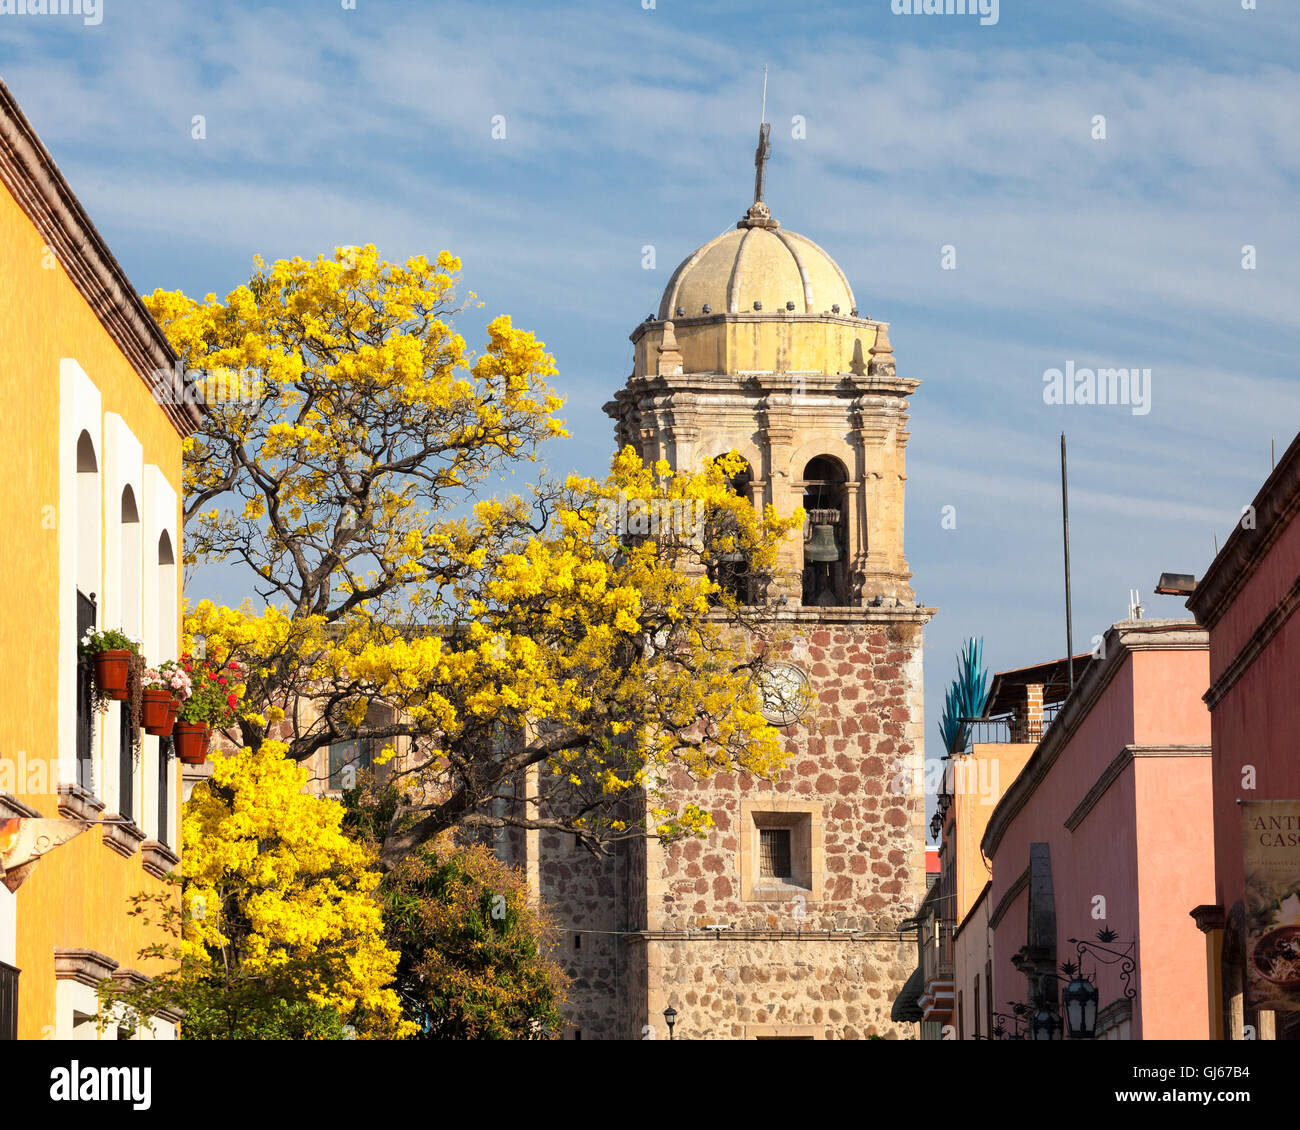 Church tower and buildings in tranquil Tequila, Jalisco, Mexico. - Stock Image